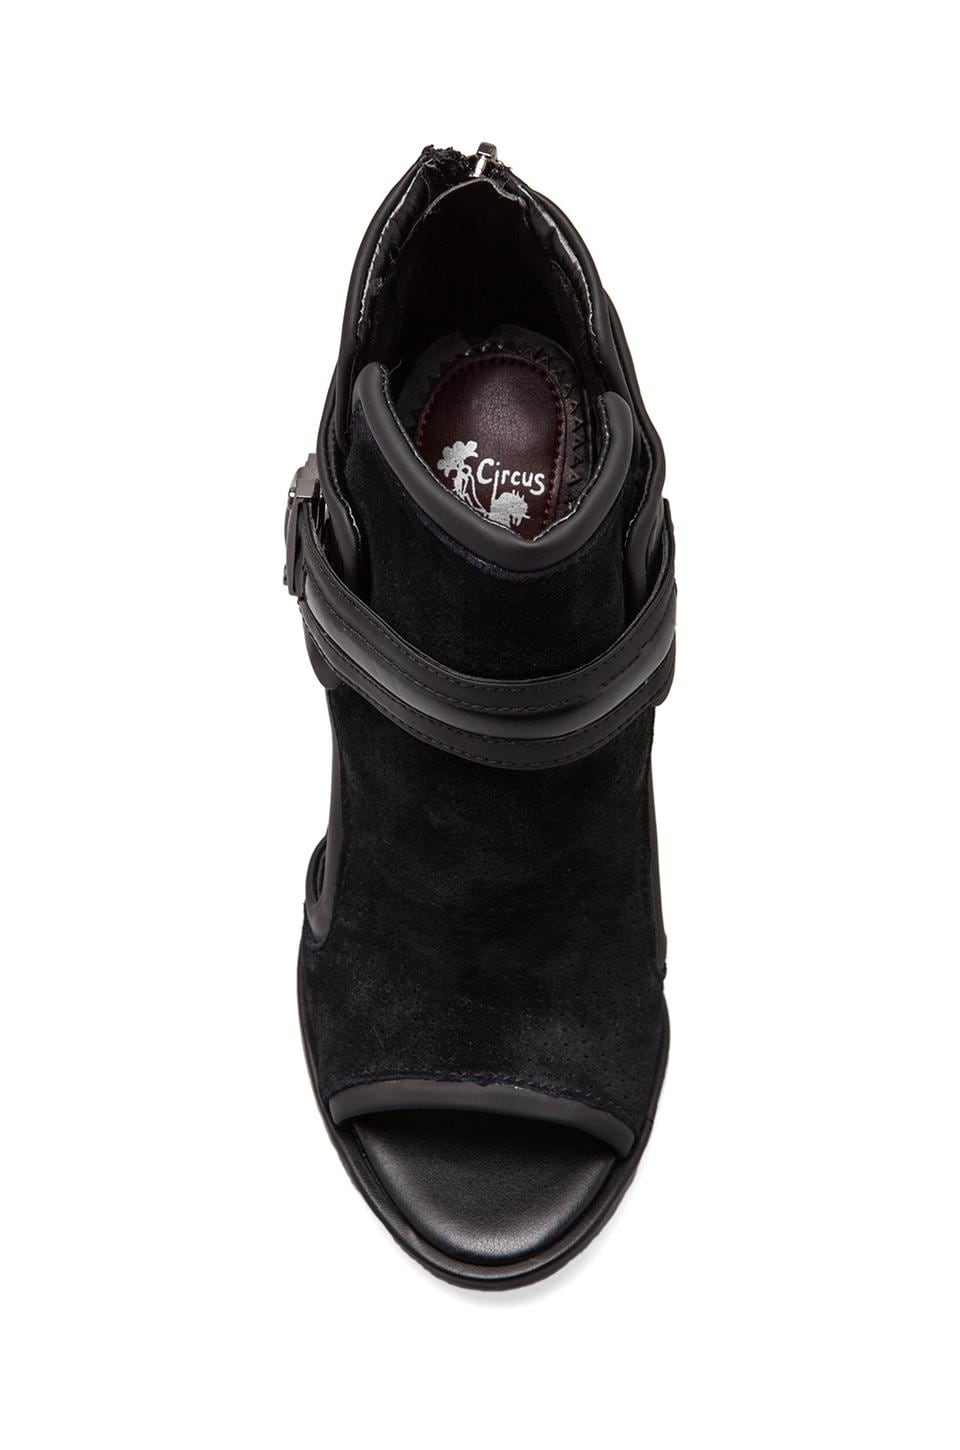 Circus by Sam Edelman Skye Bootie in Black